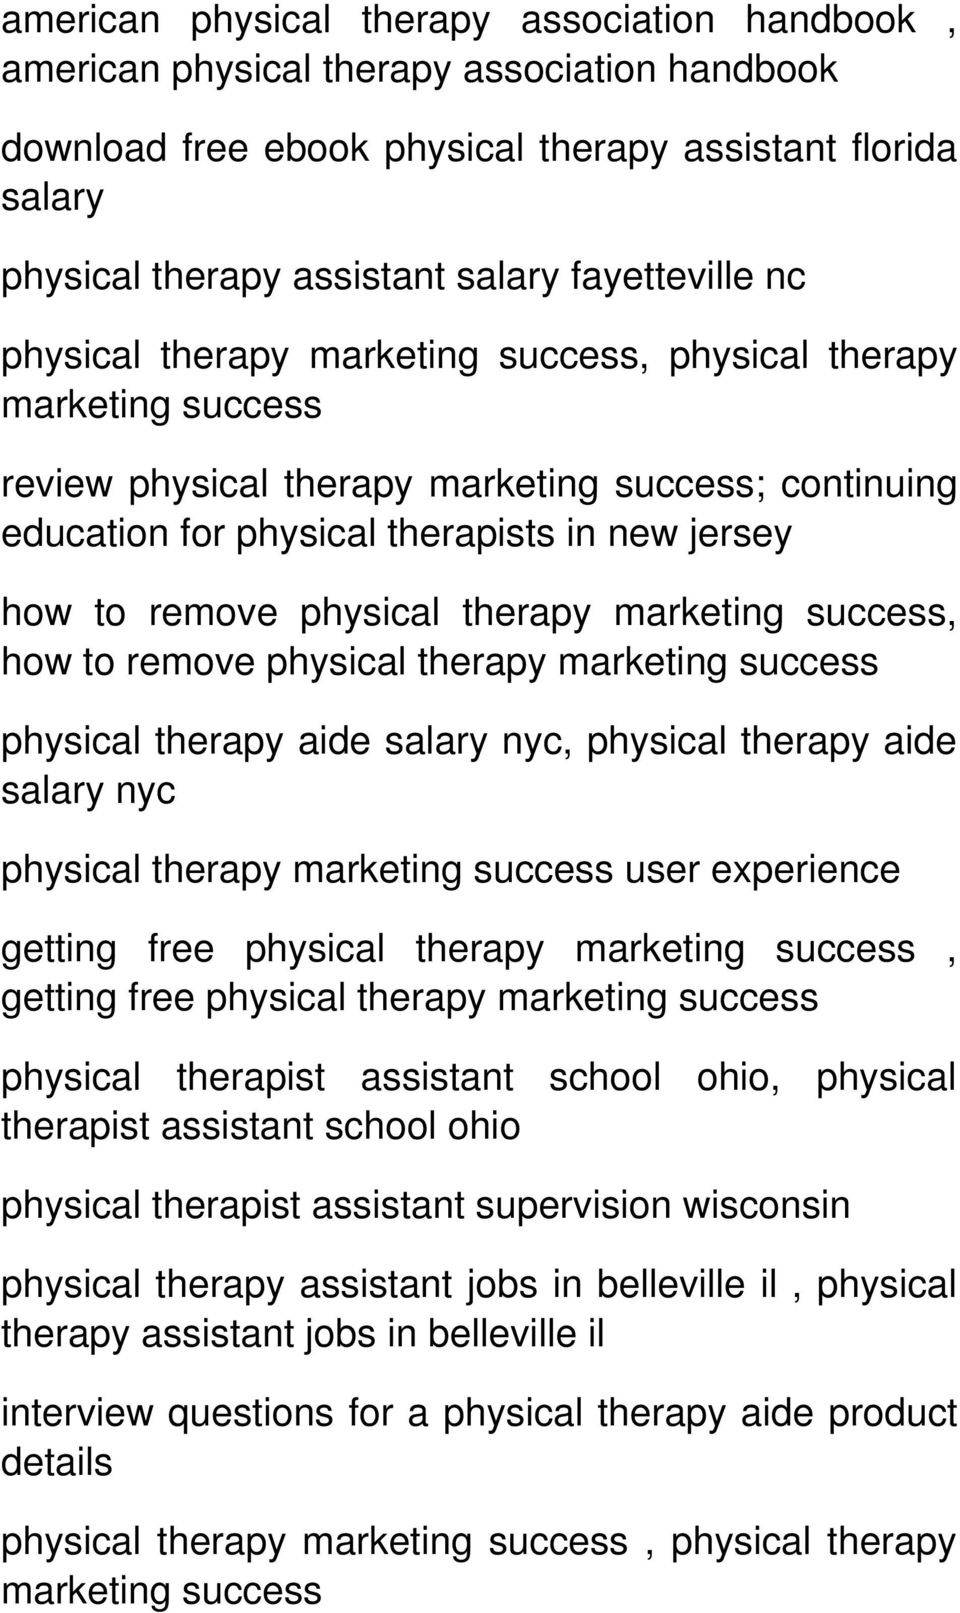 physical therapy aide salary nyc, physical therapy aide salary nyc physical therapy user experience getting free physical therapy, getting free physical therapy physical therapist assistant school